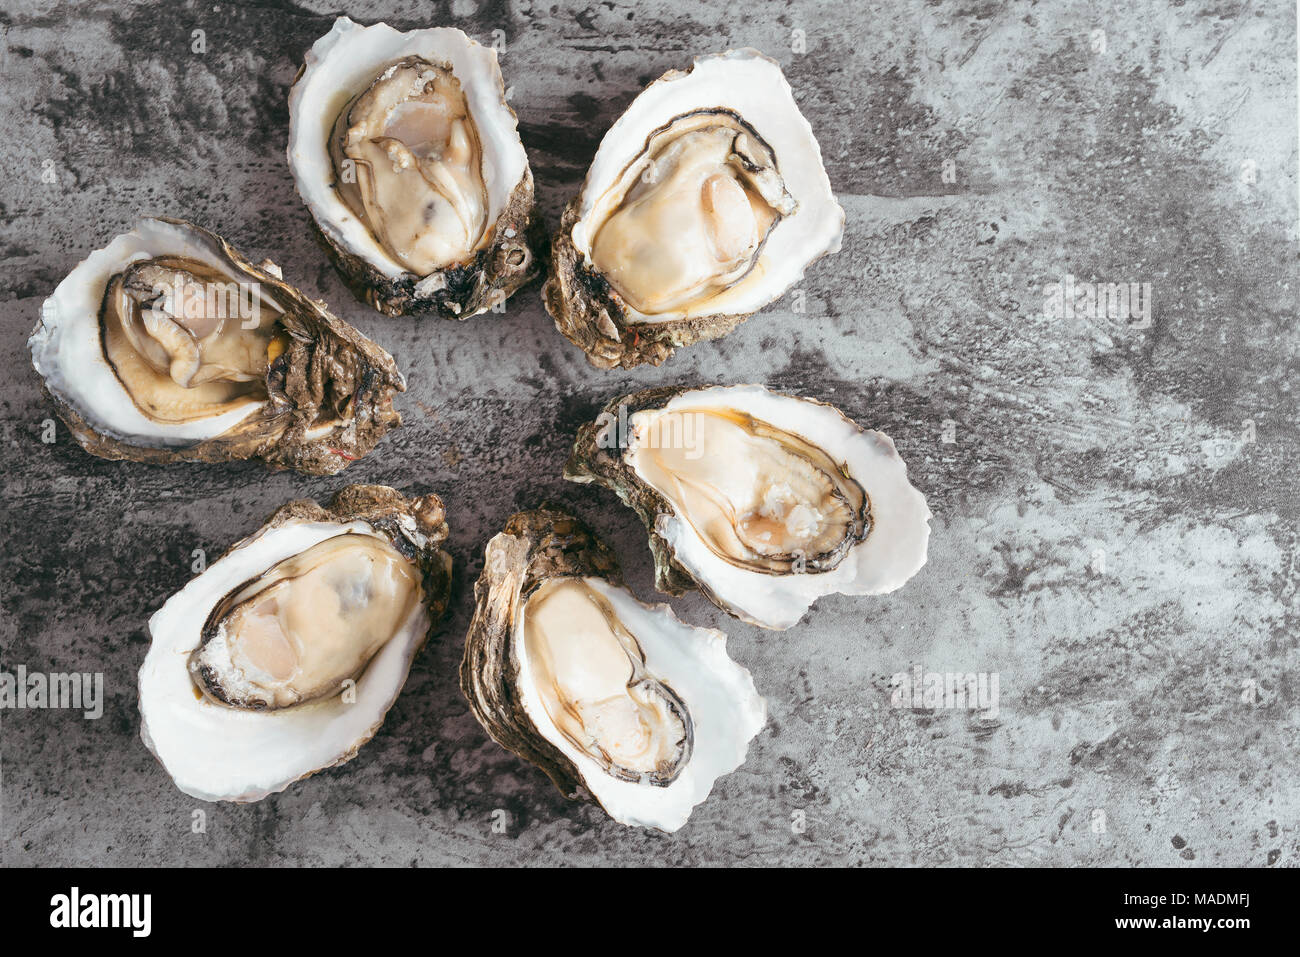 Opened Oysters on black metal rustic background Stock Photo